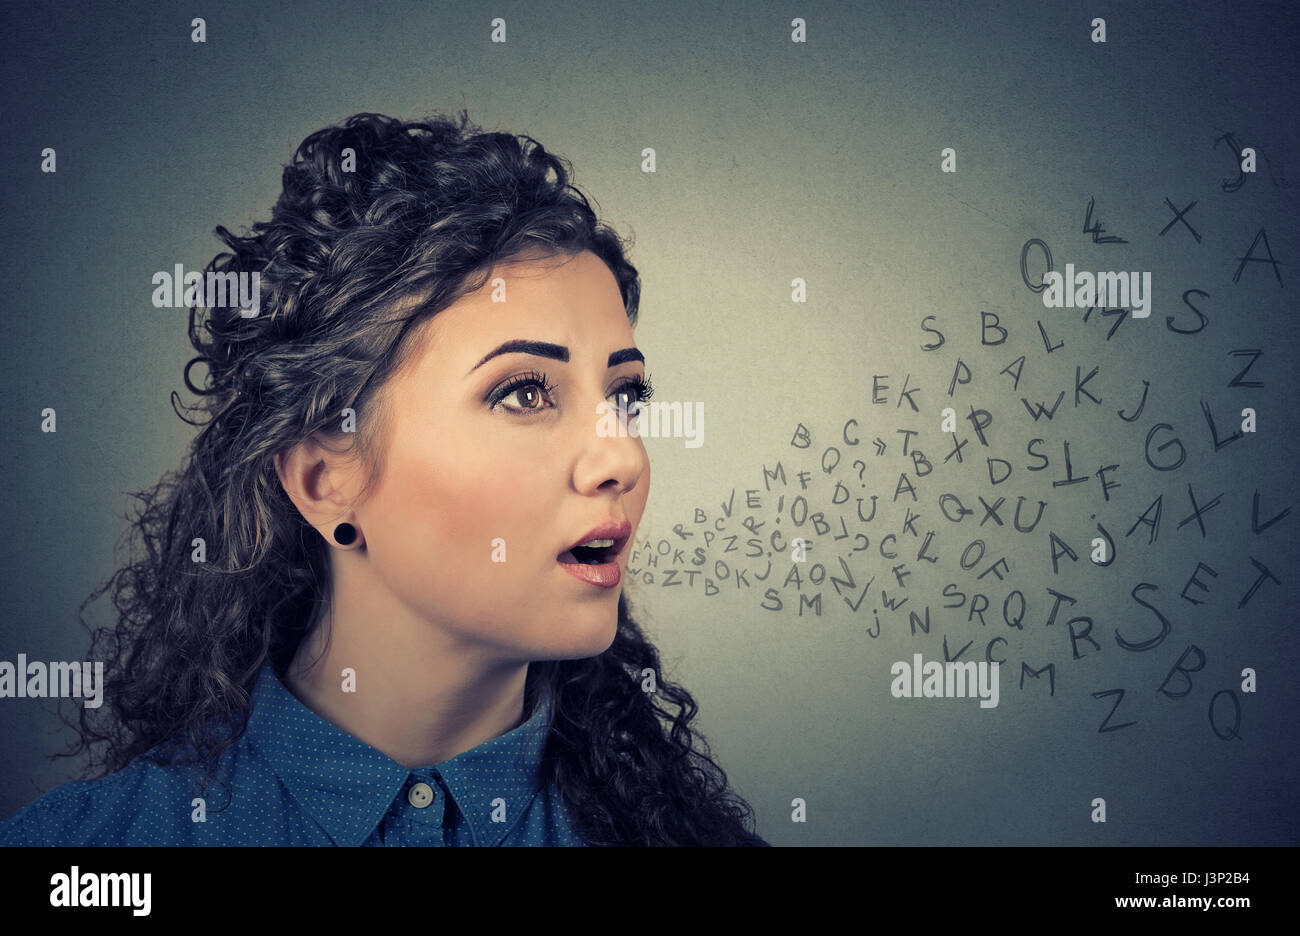 Woman talking with alphabet letters coming out of her mouth. Communication, information, intelligence concept Stock Photo